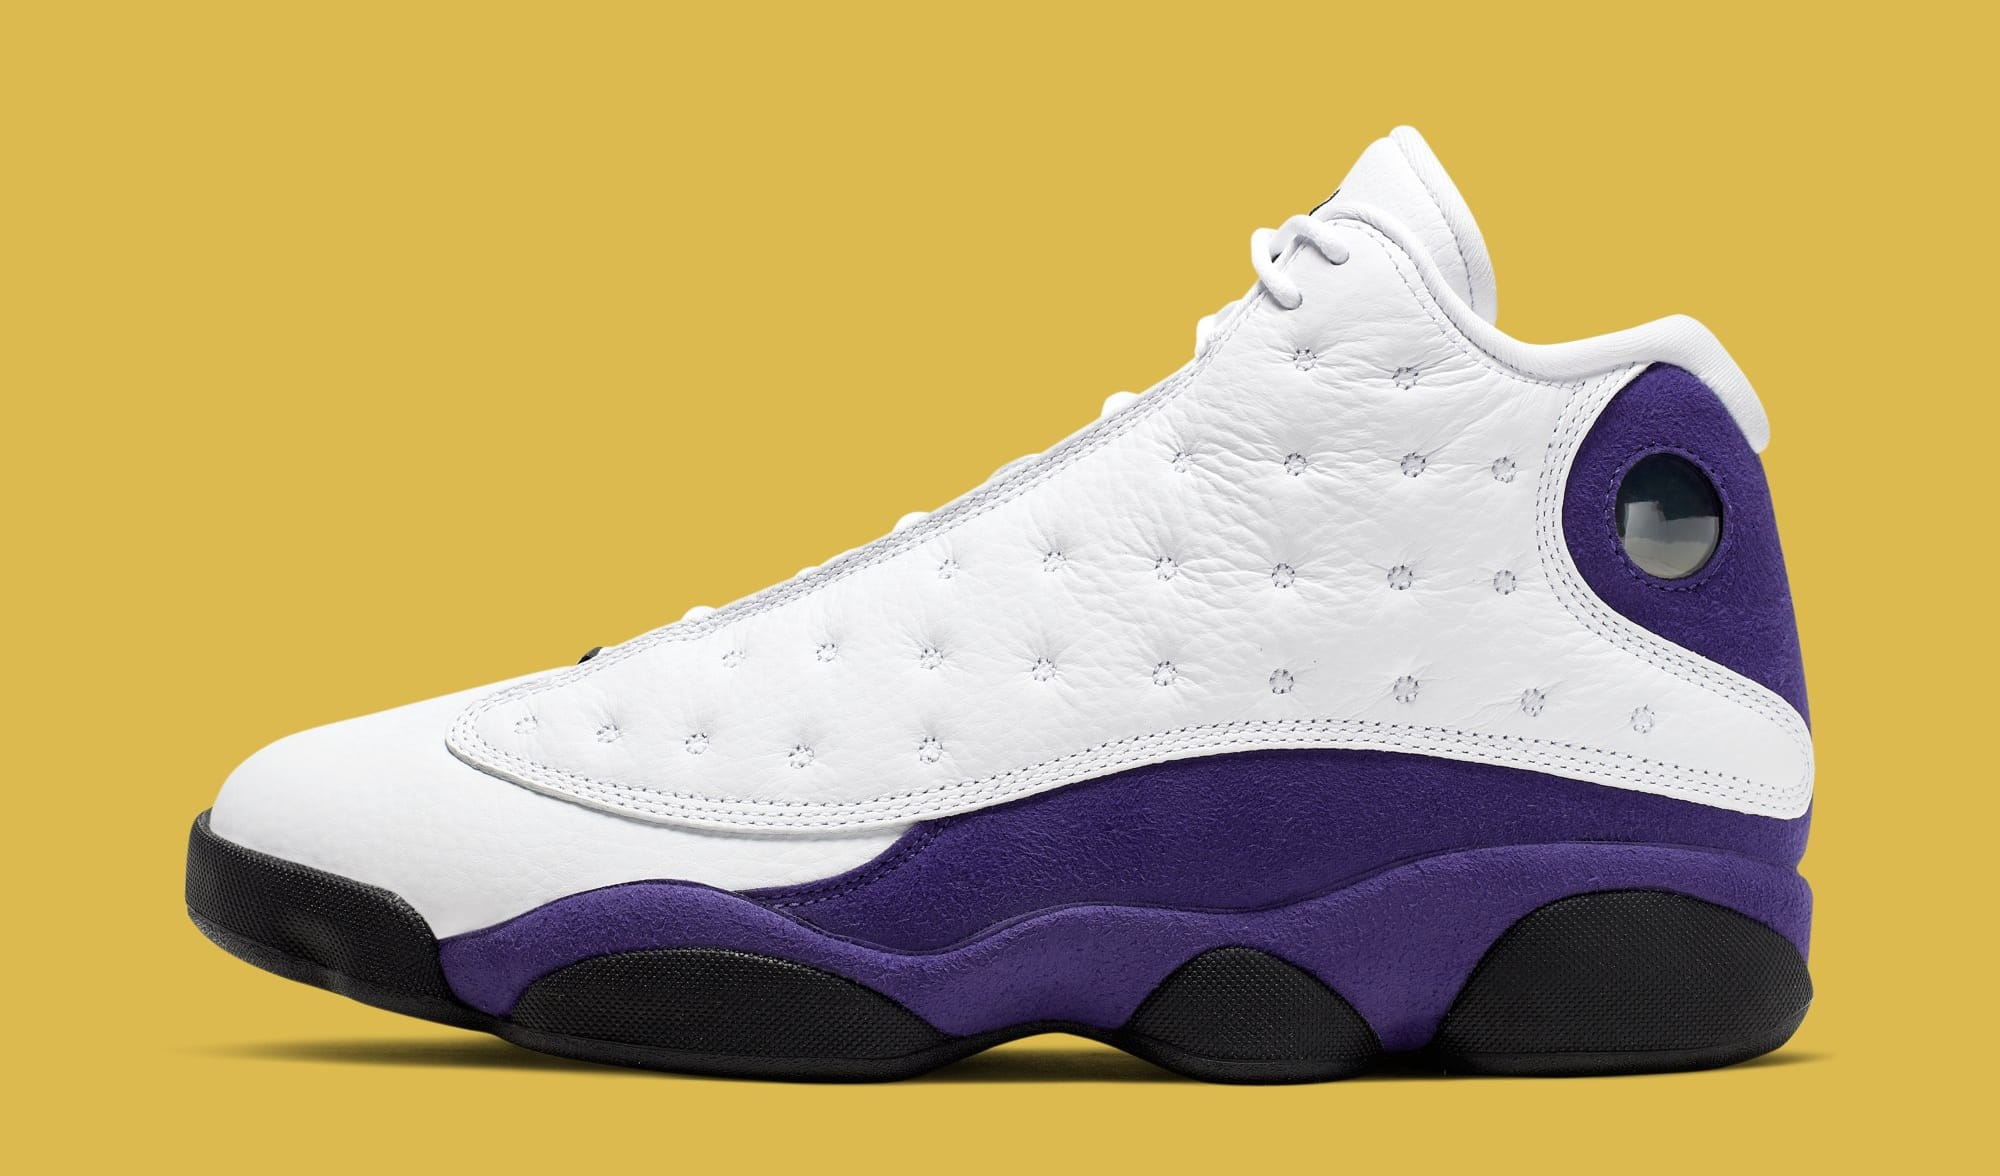 super popular b9fcd 1aed6 Air Jordan 13 'Lakers' White/Black-Court Purple-University ...